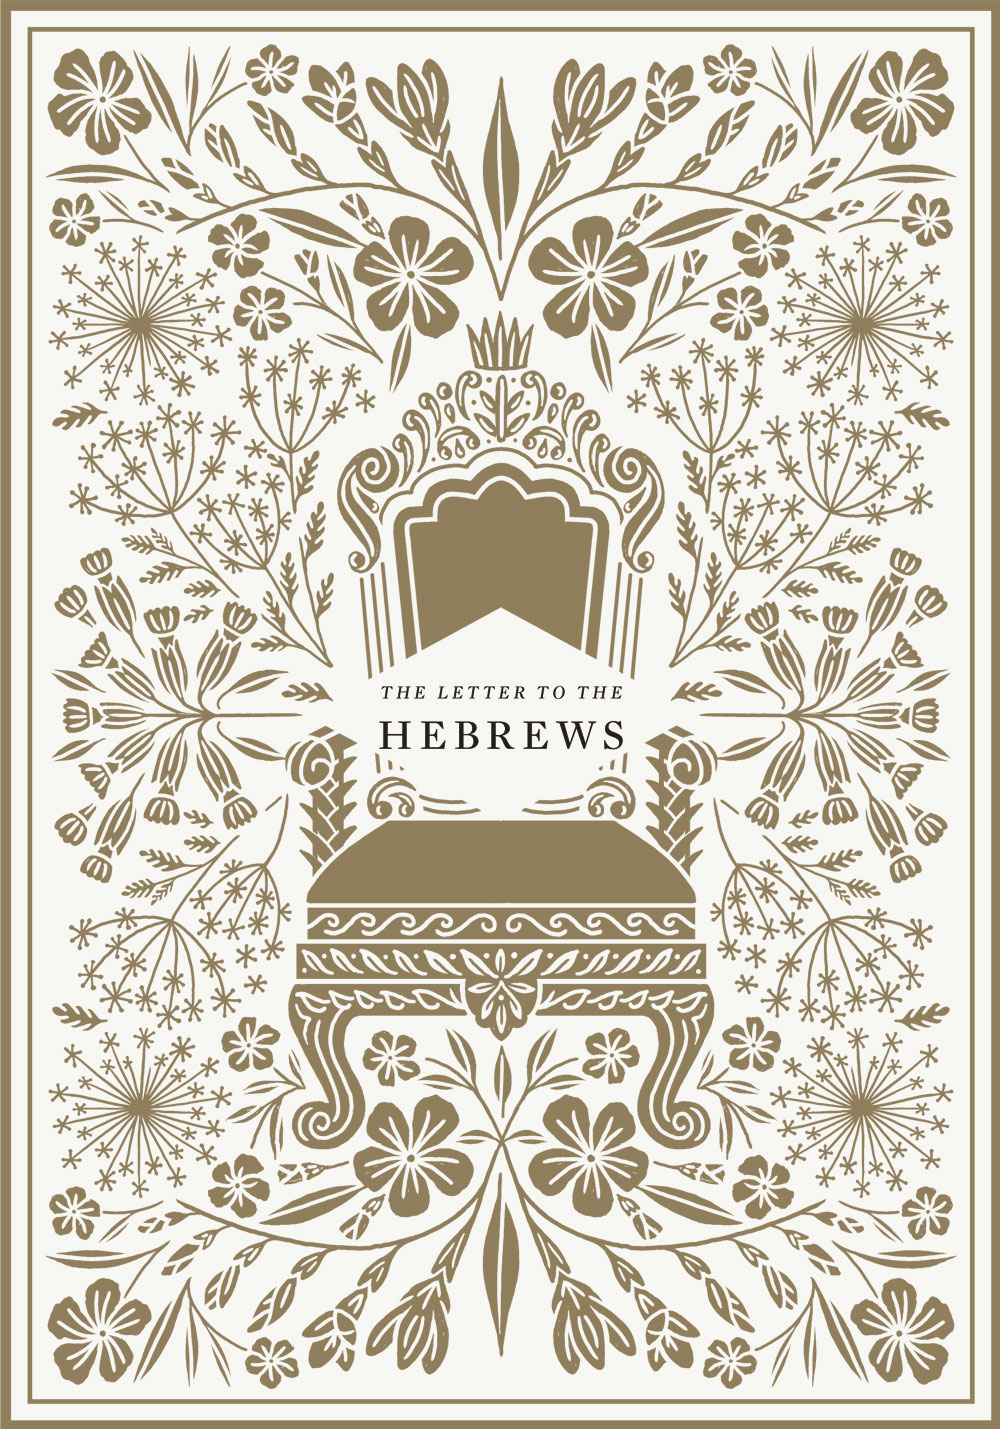 58-Hebrews.jpg